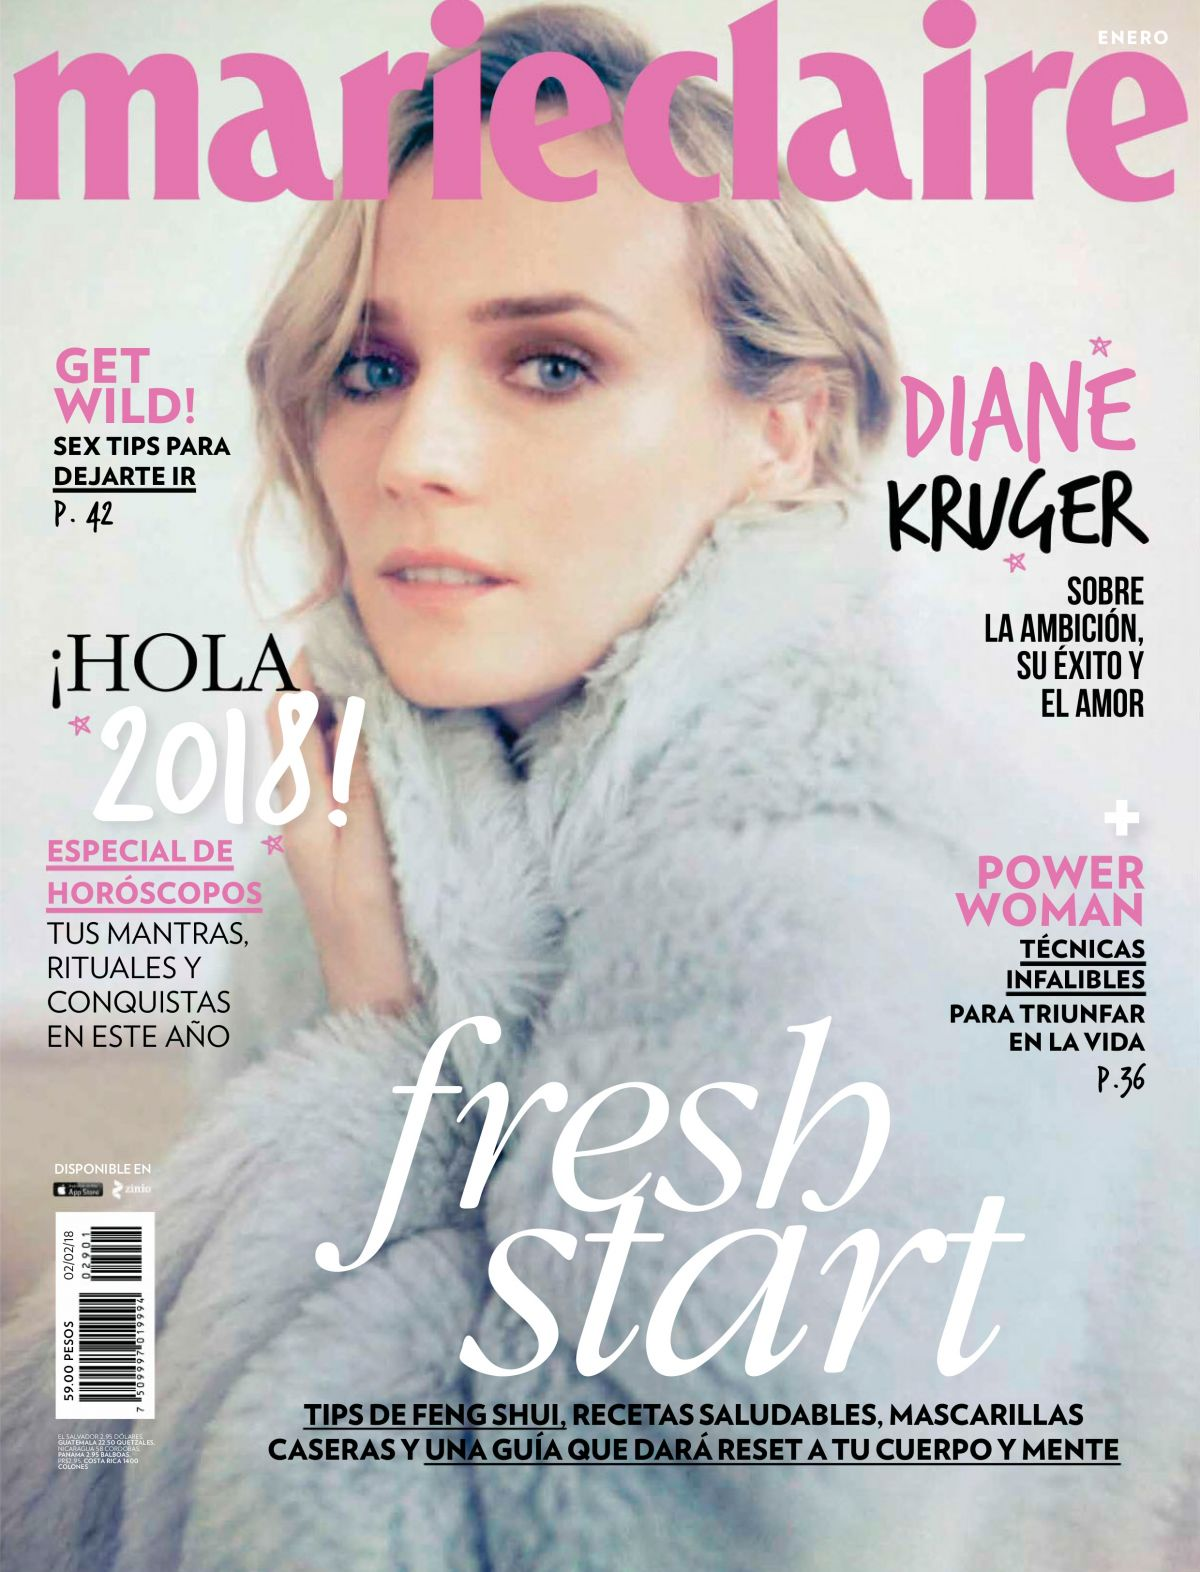 Photo Shoot of Diane Kruger for Marie Claire Magazine Mexico January 2018